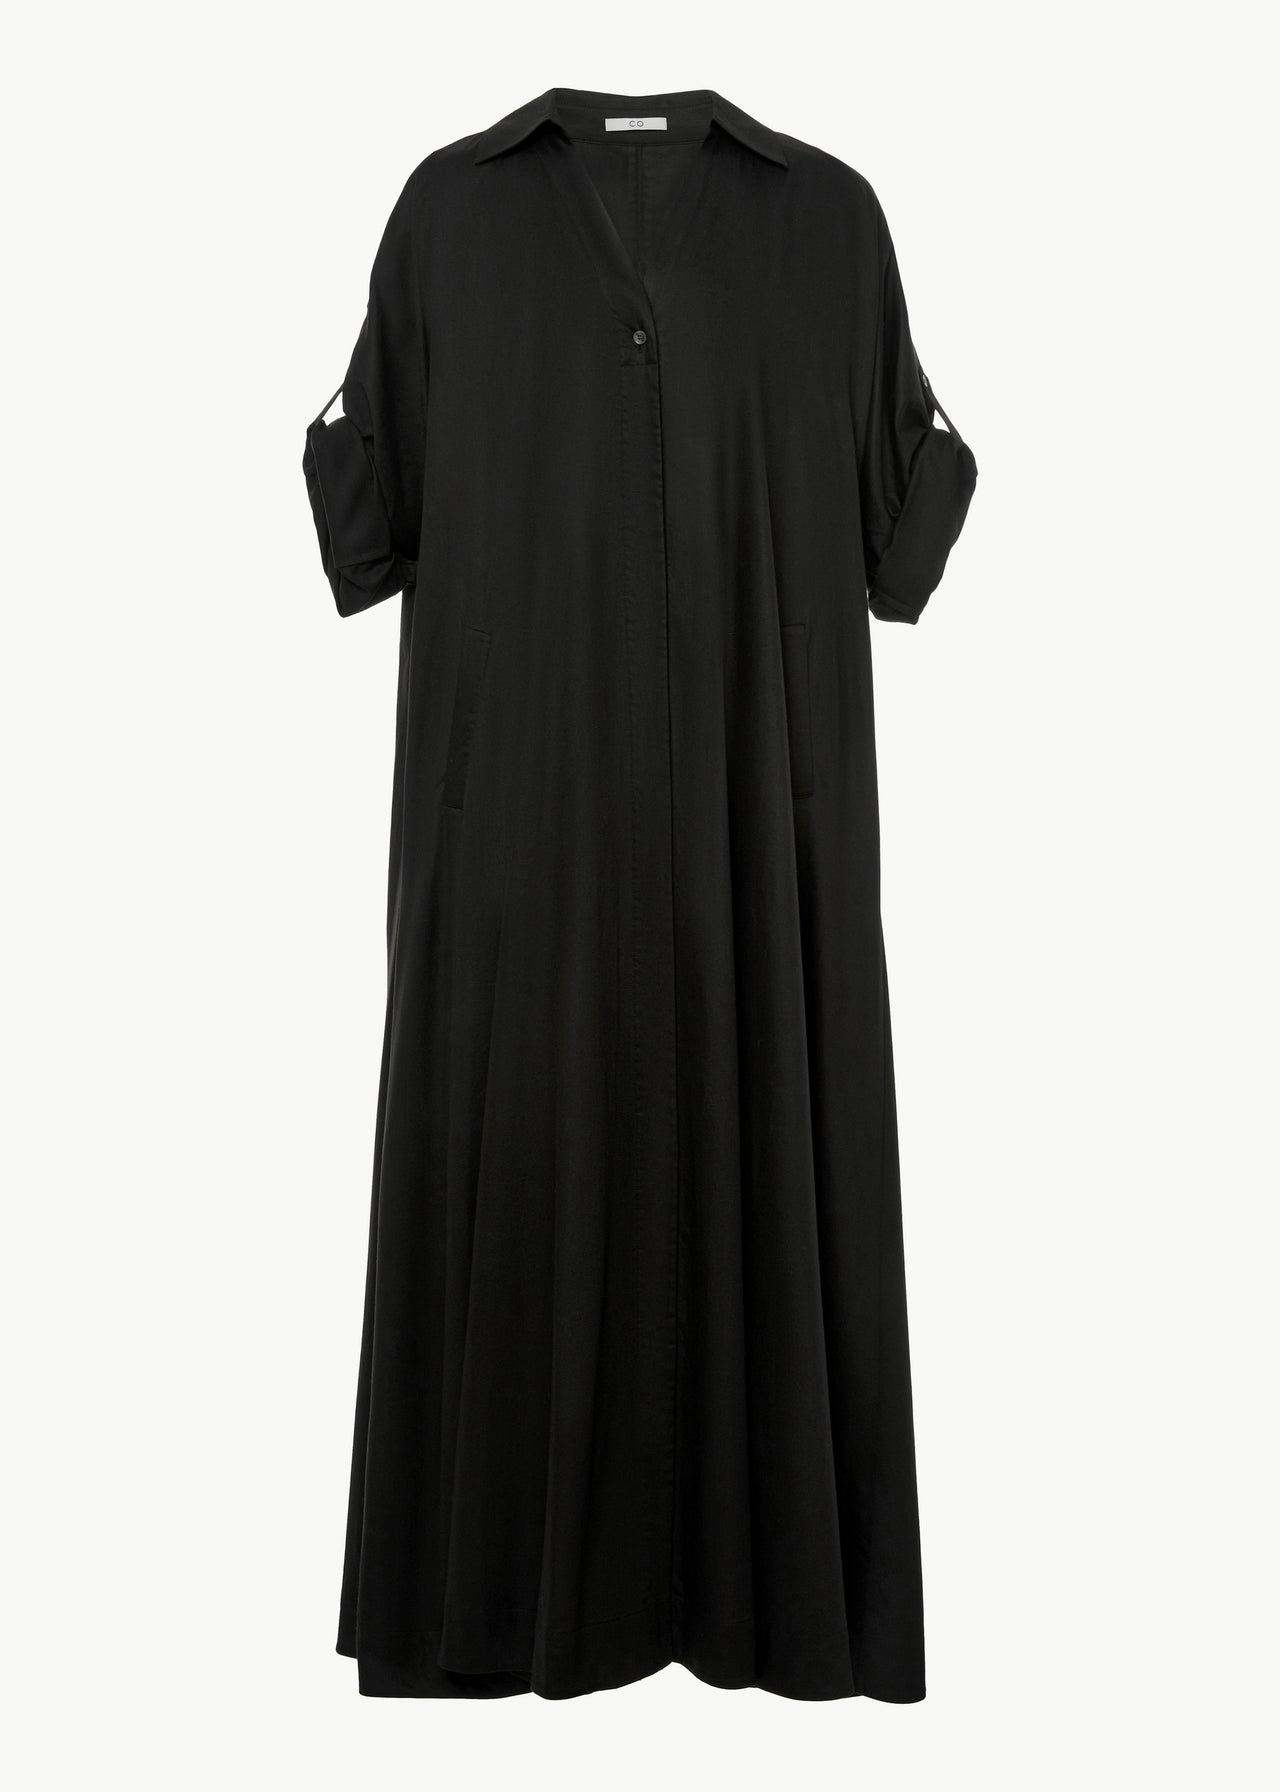 Rolled Sleeve Dress in Japanese Cotton - Black